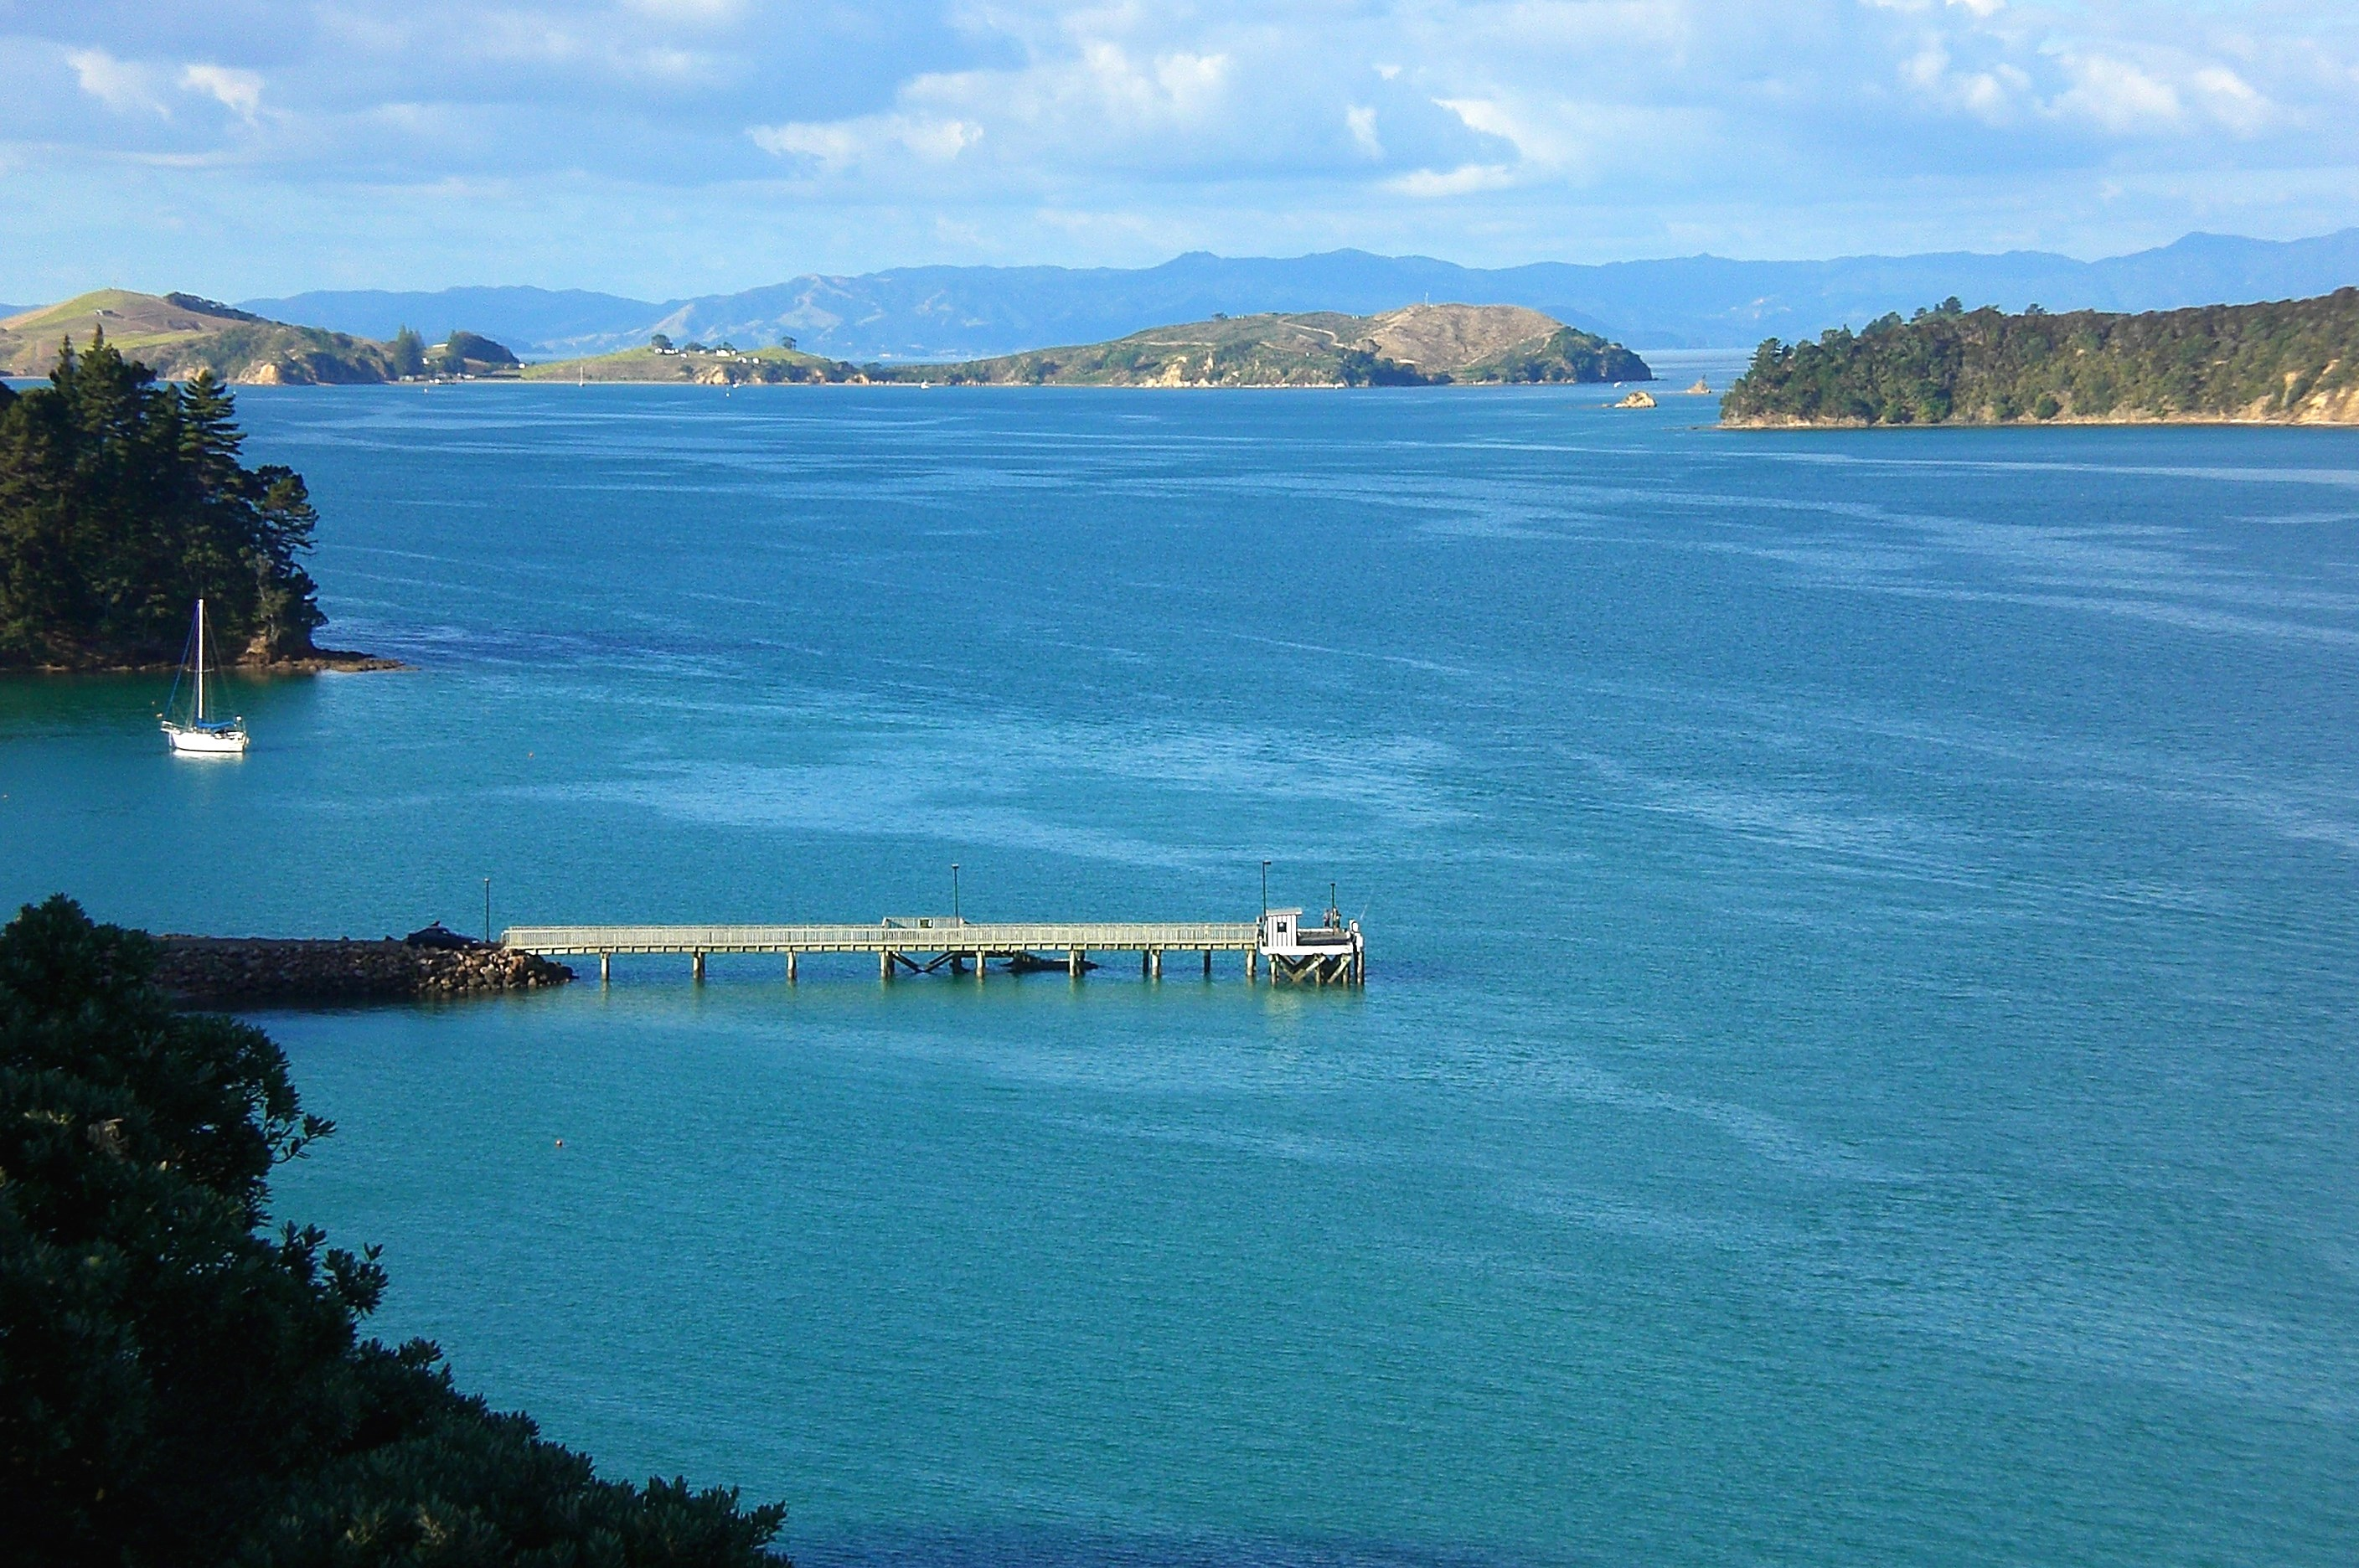 Pier at Orapiu where a ferry calls in from Auckland on route to the Coromandel via Rotora Island, which is where another walk will be.